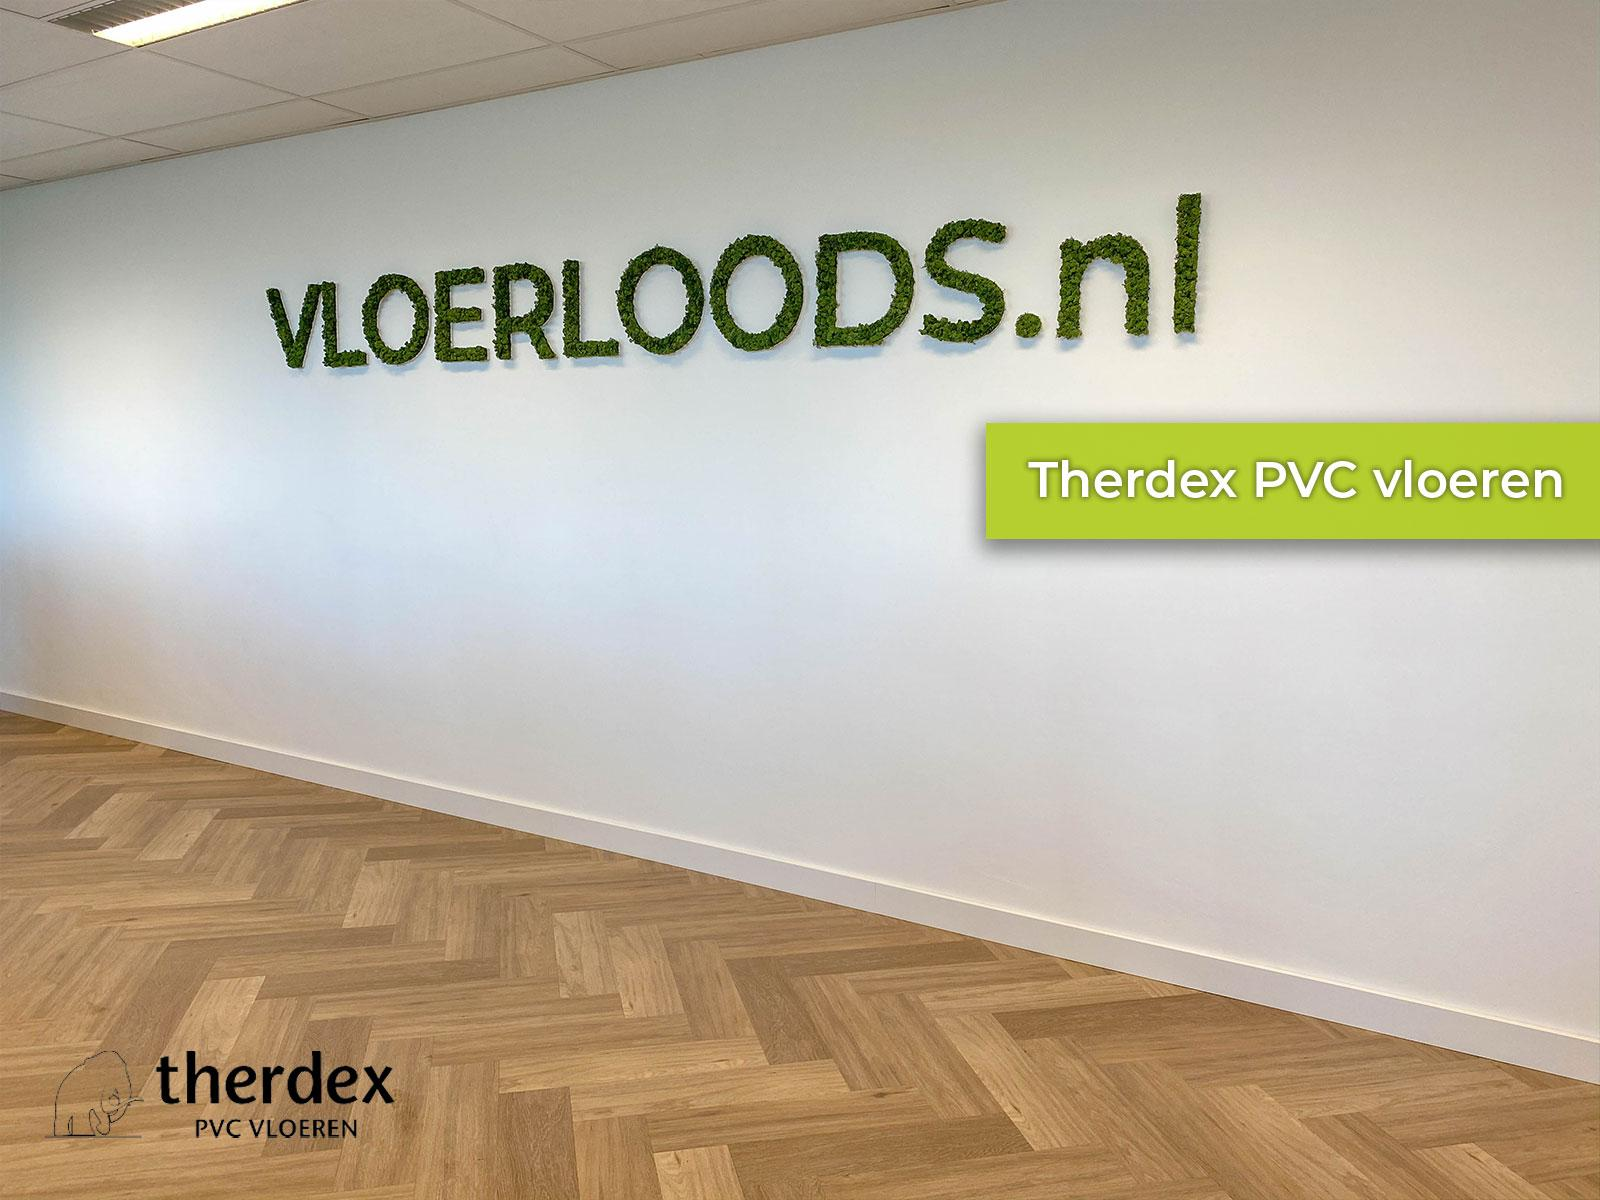 Therdex PVC vloer